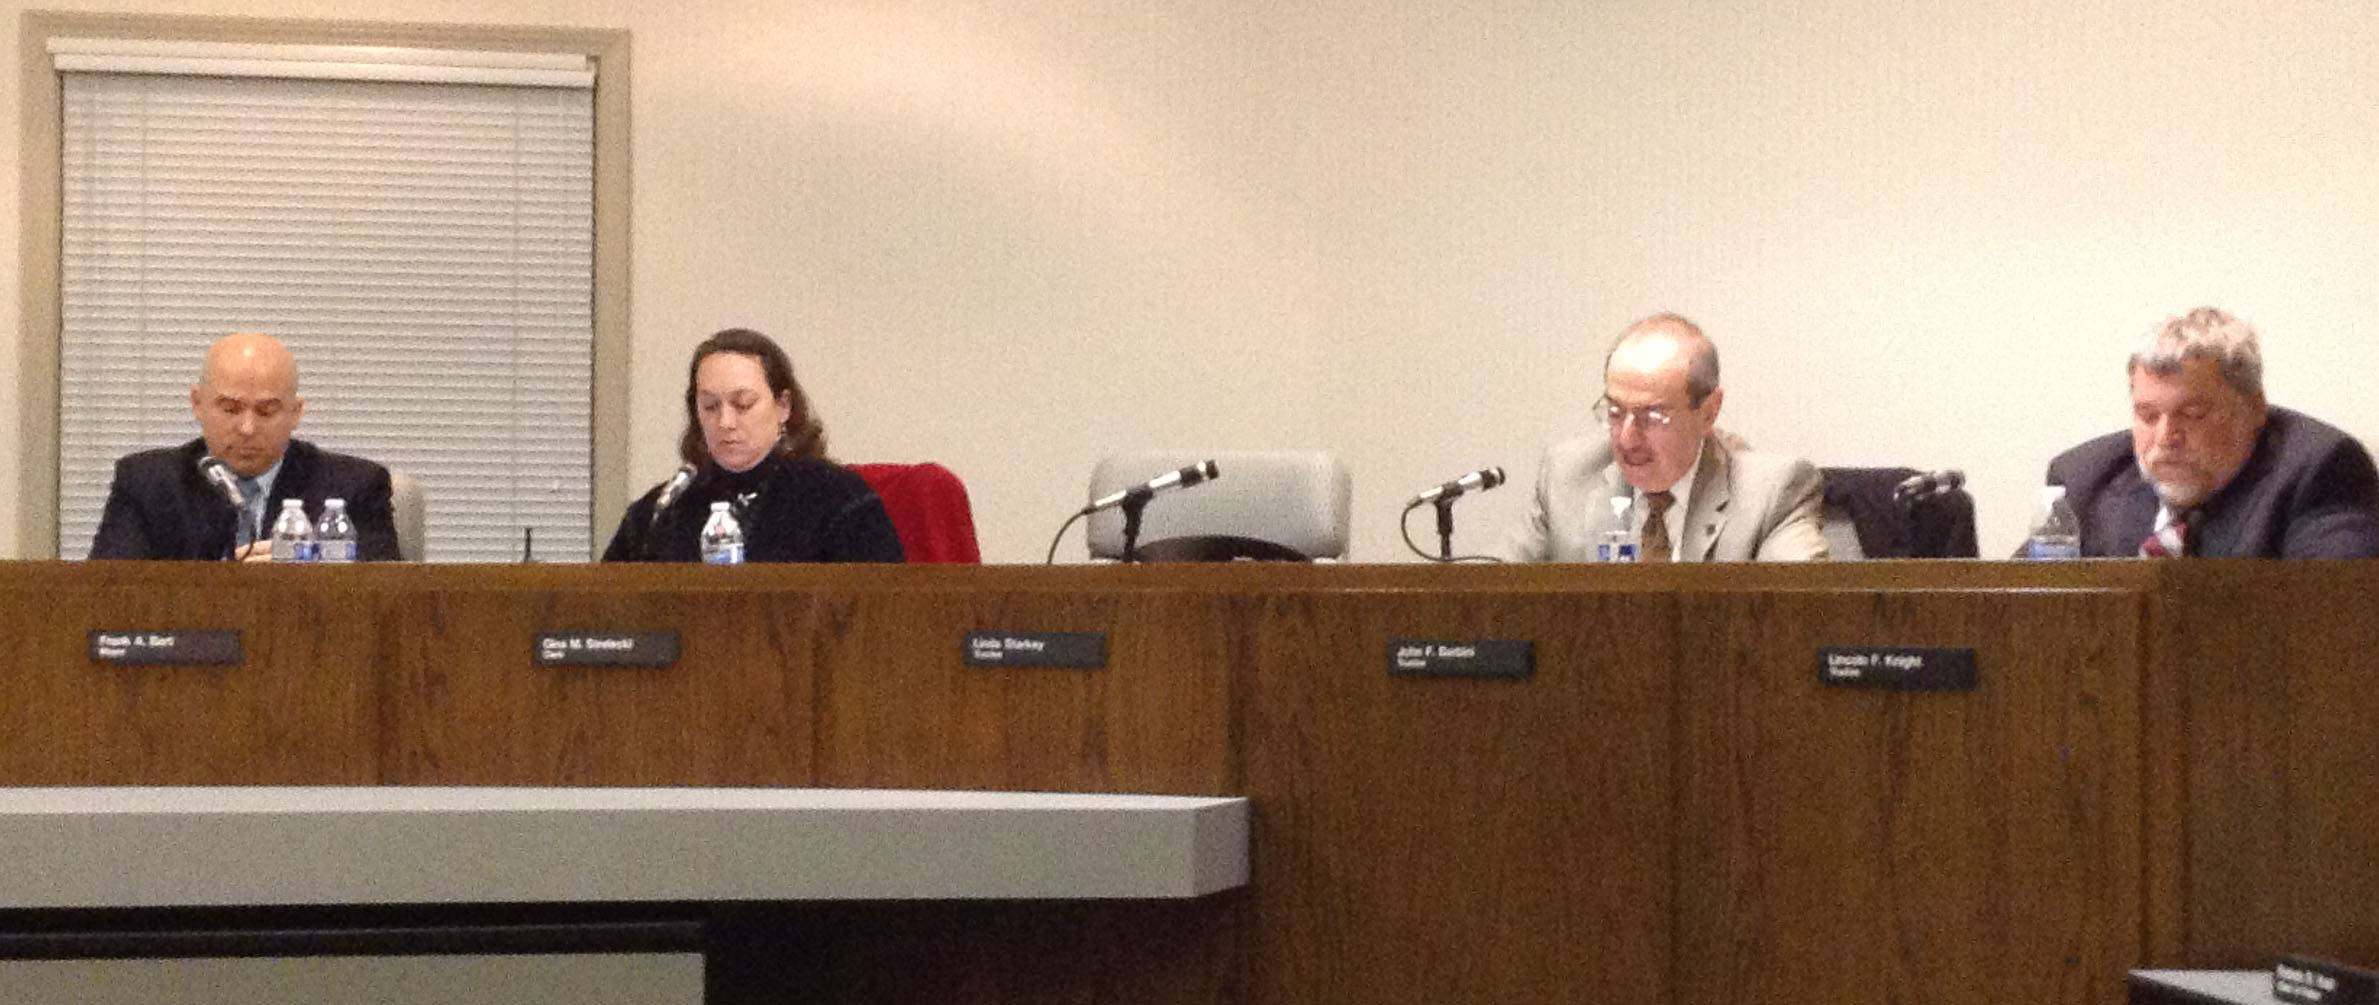 Wauconda Trustee John Barbini, second from right, talks about the 911 call center outsourcing proposal on Tuesday night.